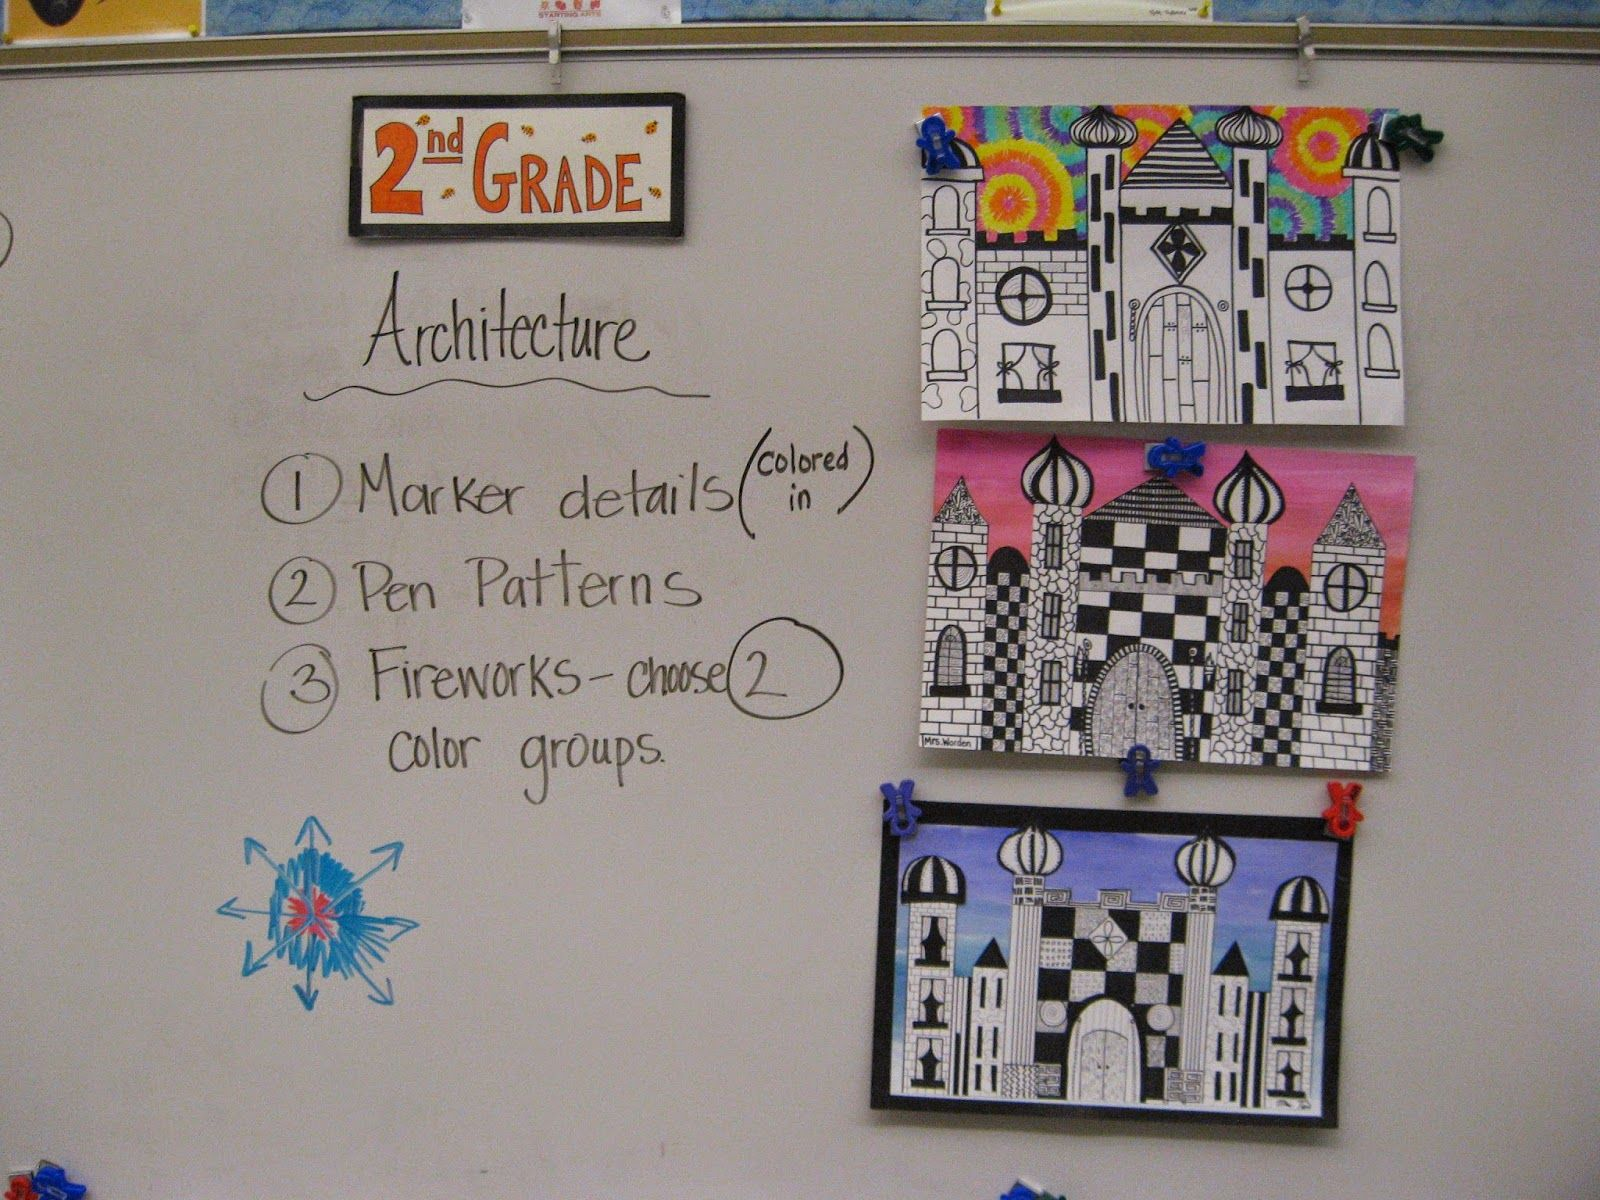 2nd Grade Castle Architecture (Jamestown Elementary Art Blog)